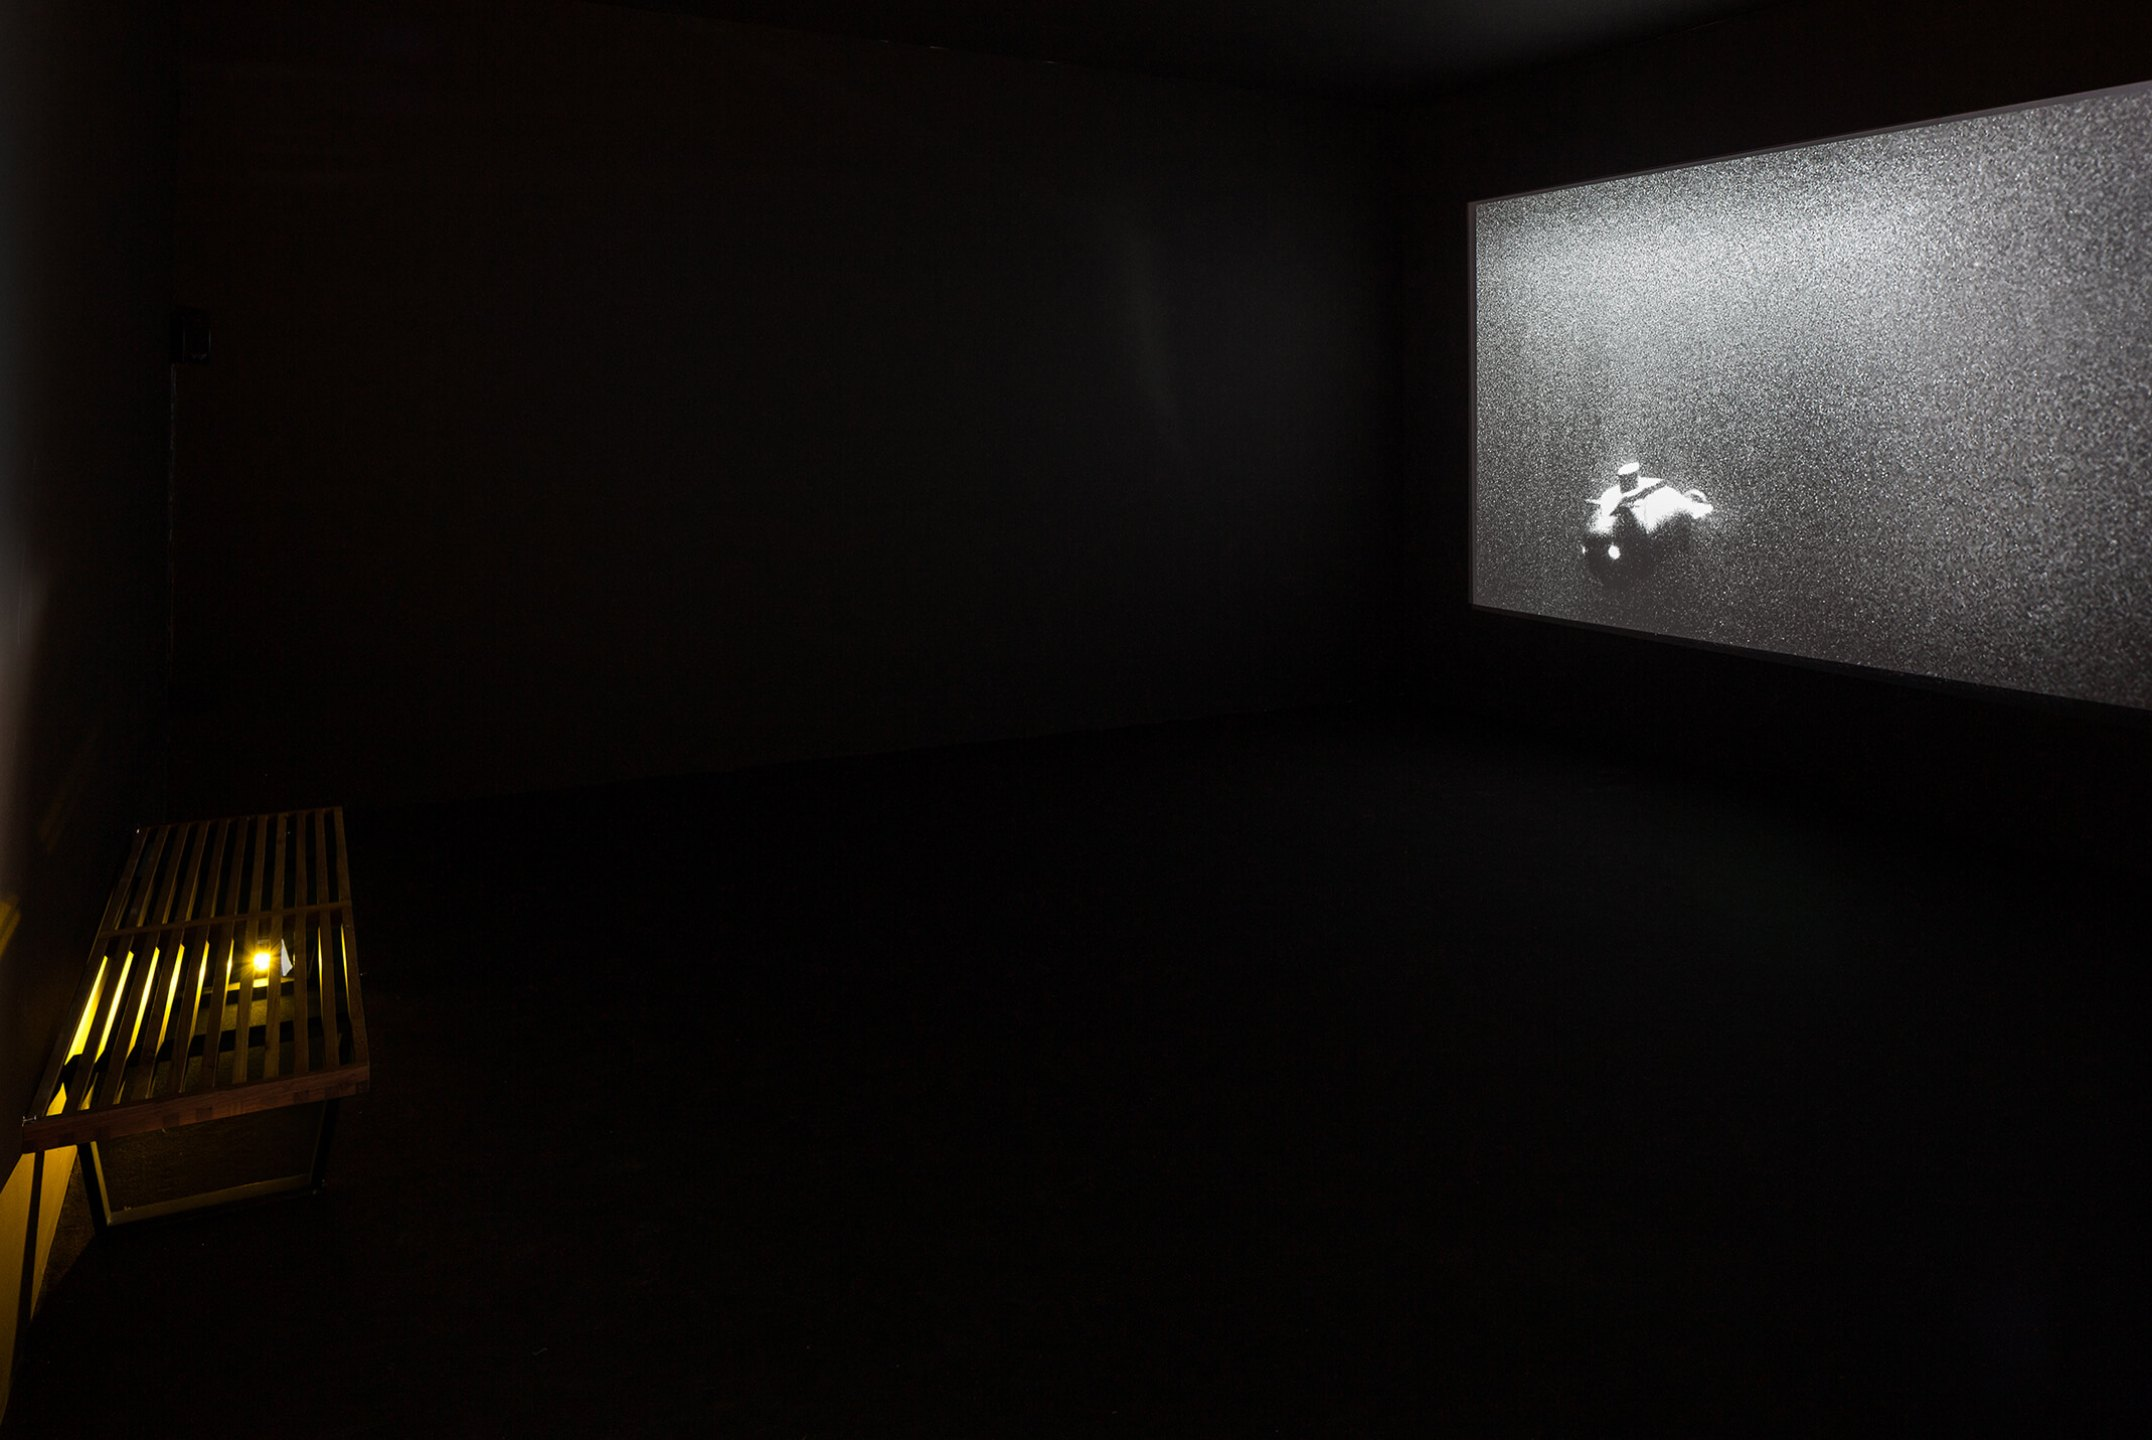 Leticia Ramos, <em>VOSTOK – Screening #1</em>, Mendes Wood DM, São Paulo, 2014 - Mendes Wood DM